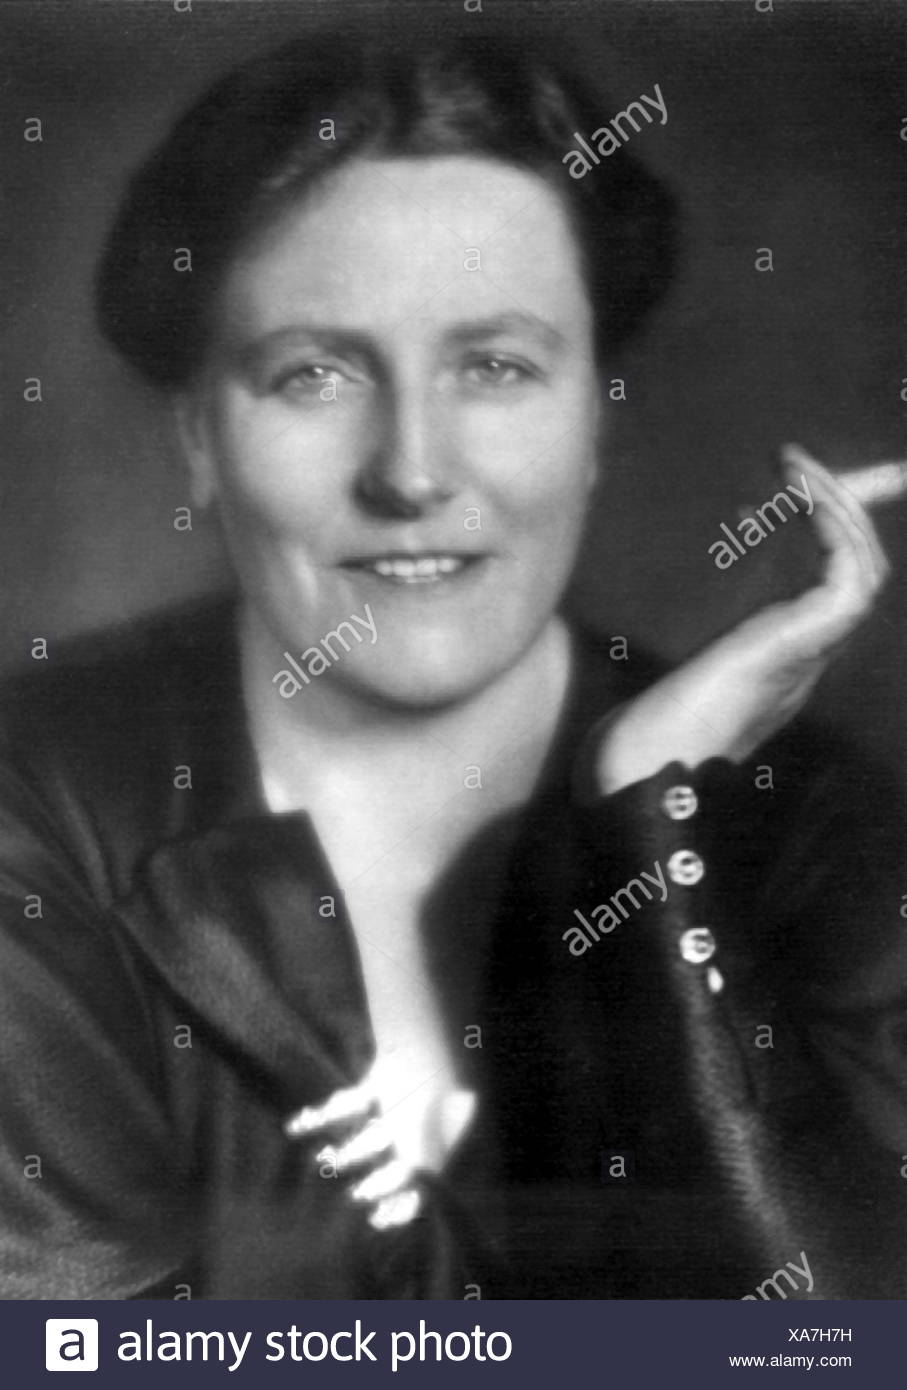 Wagner, Winifred, 23.6.1897 - 5.3.1980, belle-fille de Richard Wagner, portrait, Additional-Rights-Jeux-NA Photo Stock